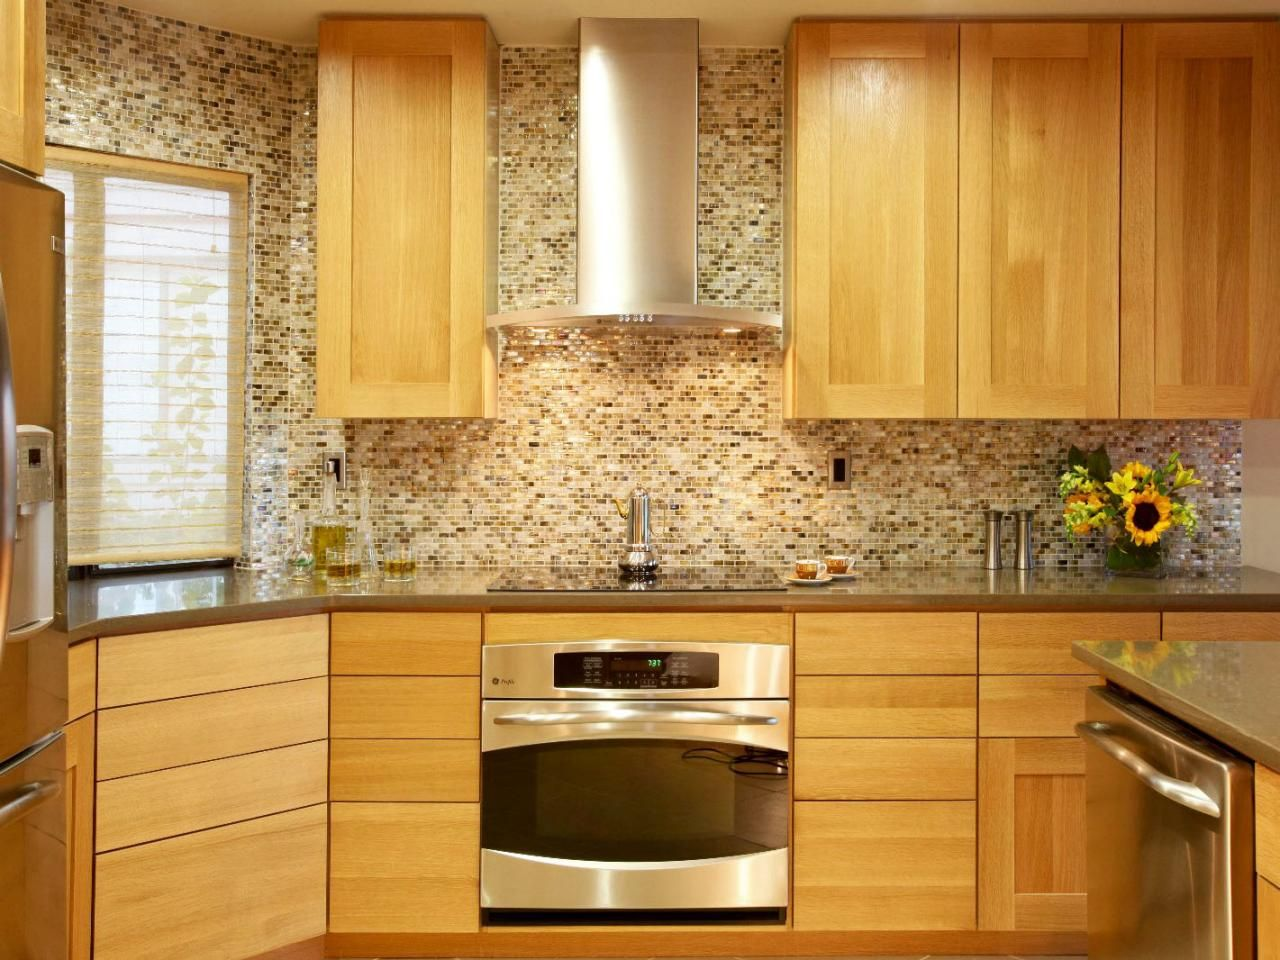 Pictures of kitchen backsplash ideas from inset cabinets pictures of kitchen backsplash ideas from dailygadgetfo Choice Image